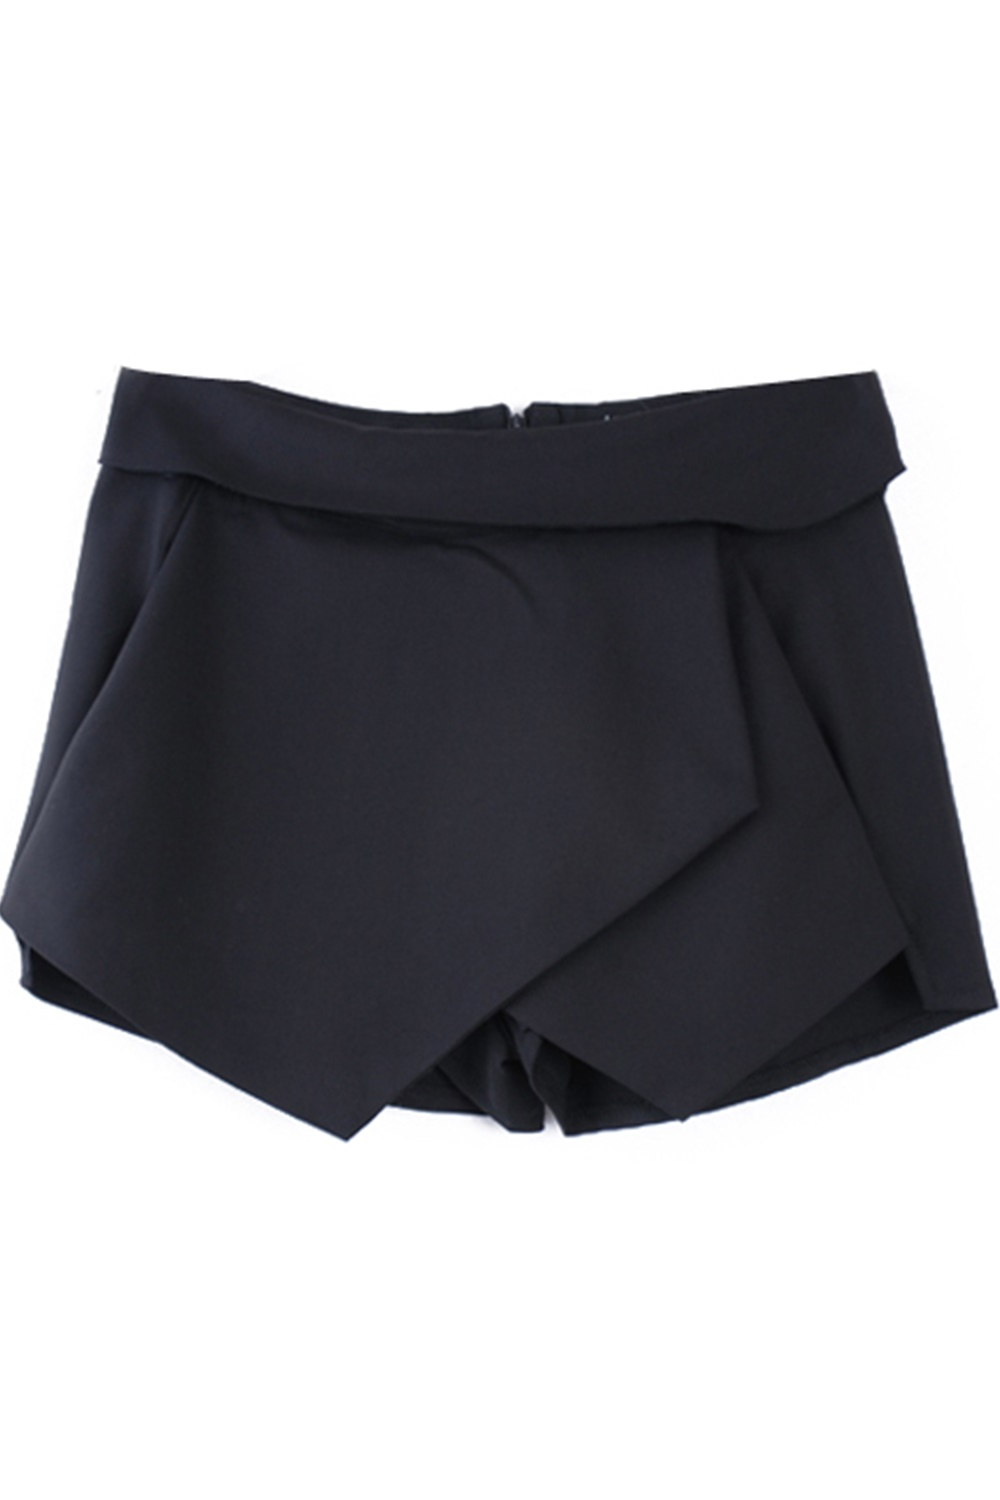 Black Asymmetric Shorts